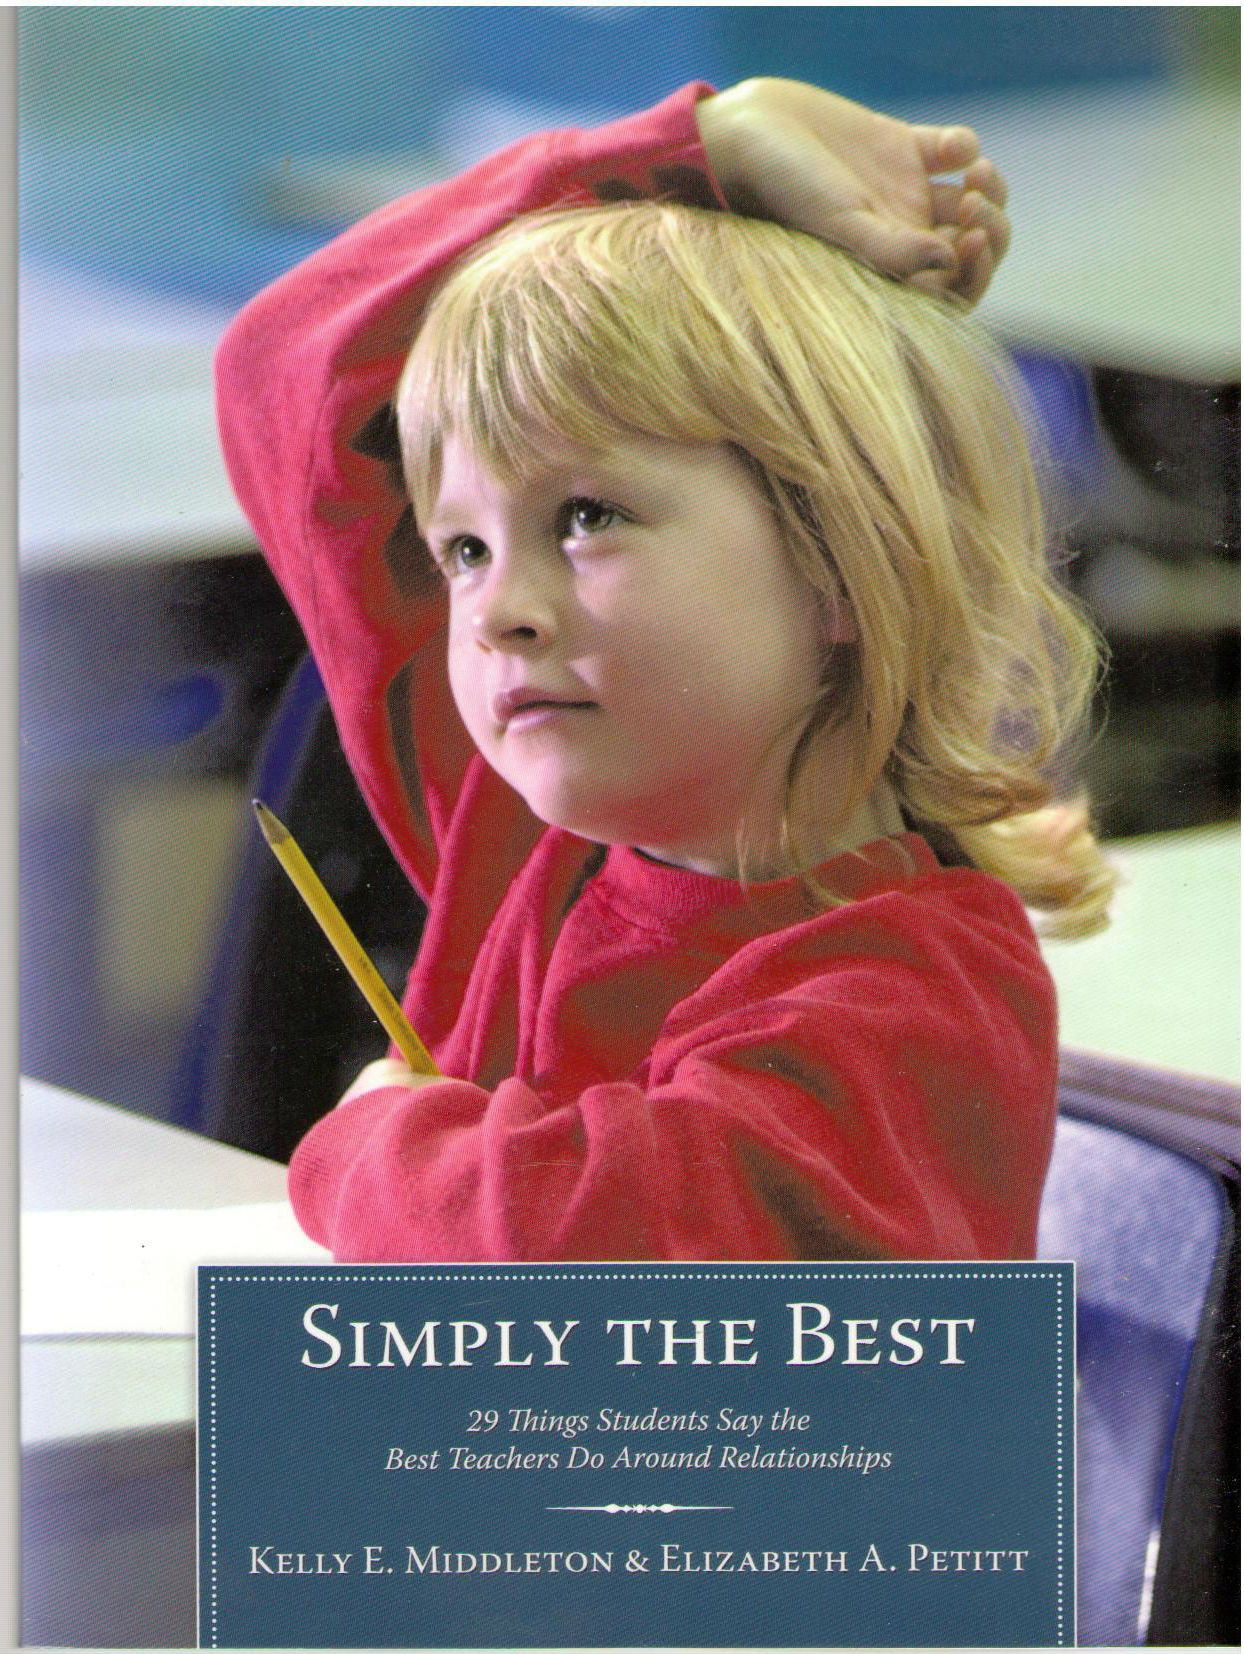 Simply the Best: 29 Things Students Say the Best Teachers Do Around Relationships, Middleton, Kelly E.